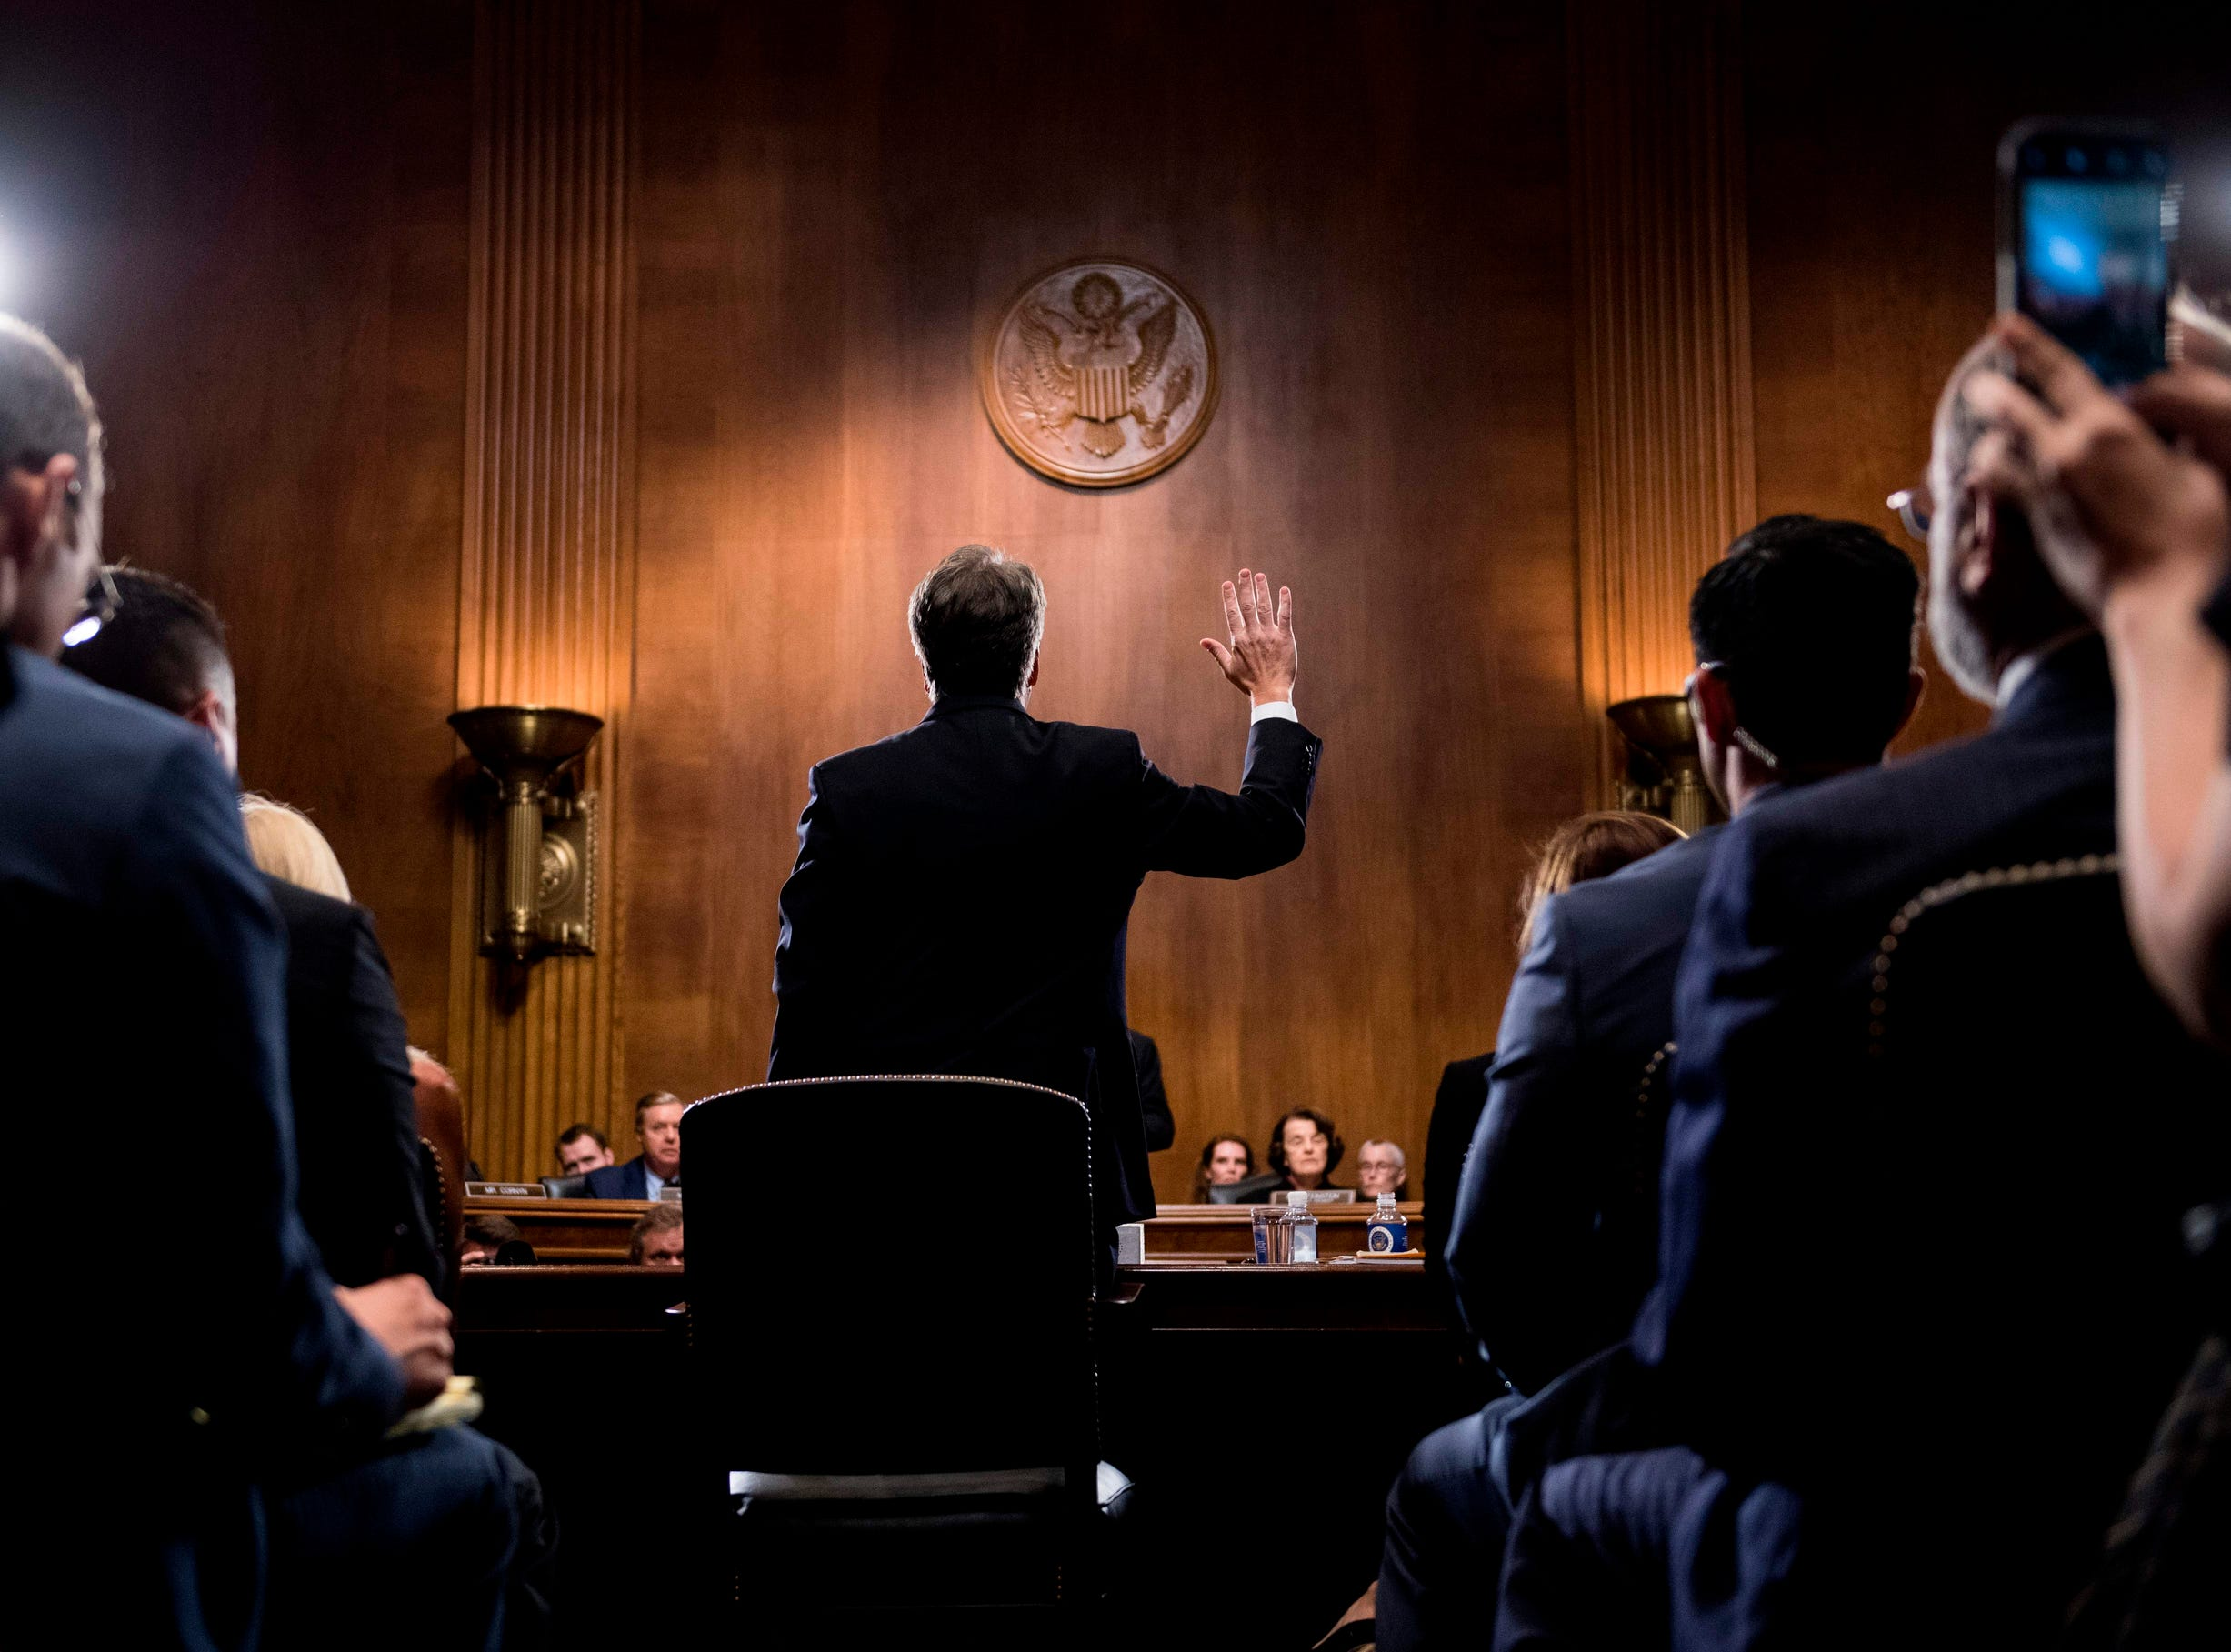 """US Supreme Court nominee Judge Brett Kavanaugh is sworn in before testifying at the Senate Judiciary Committee hearing.  University professor Christine Blasey Ford, 51, told a tense Senate Judiciary Committee hearing that could make or break Kavanaugh's nomination she was """"100 percent"""" certain he was the assailant and it was """"absolutely not"""" a case of mistaken identify."""